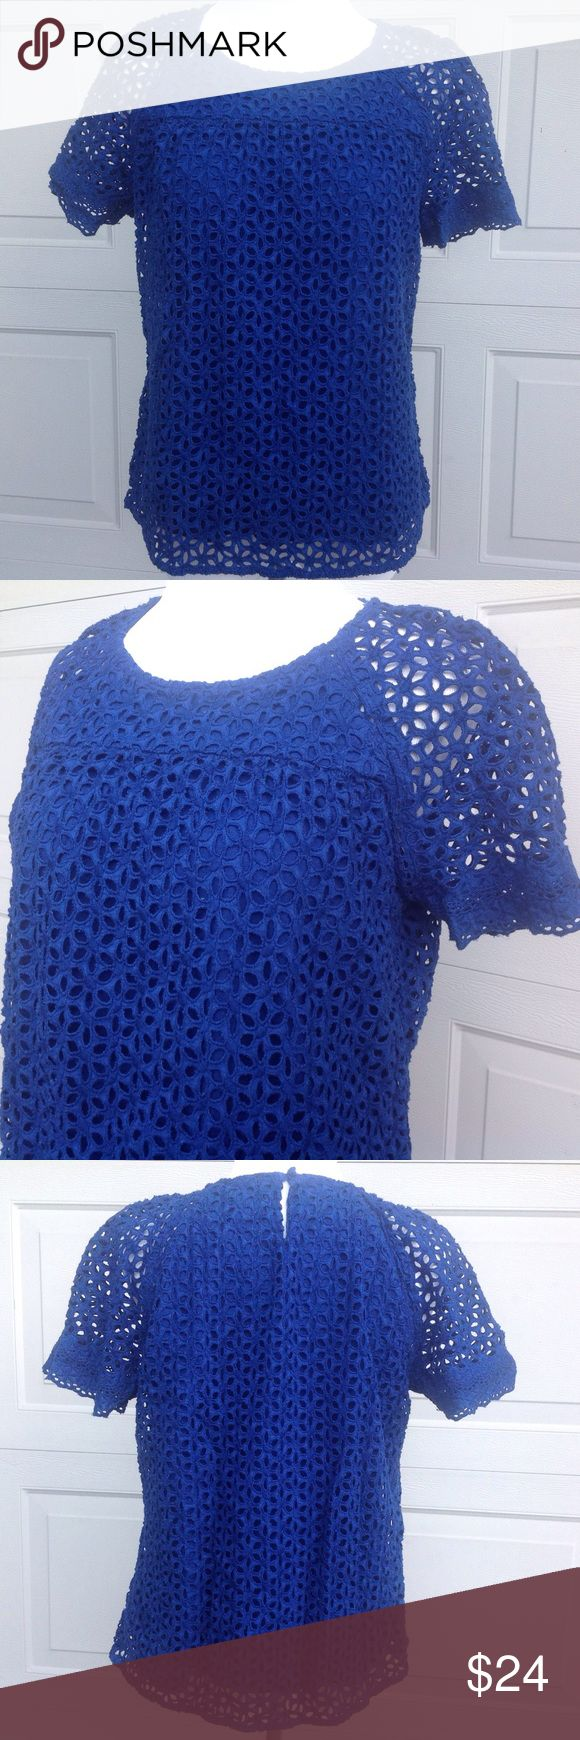 """J. Crew Royal Blue Short Sleeve Top - Size 8 Royal blue, cutout pattern, lined body, see through sleeves, button closure at back. Measurements are approximate: Chest 19"""" Length 22"""" J. Crew Tops"""